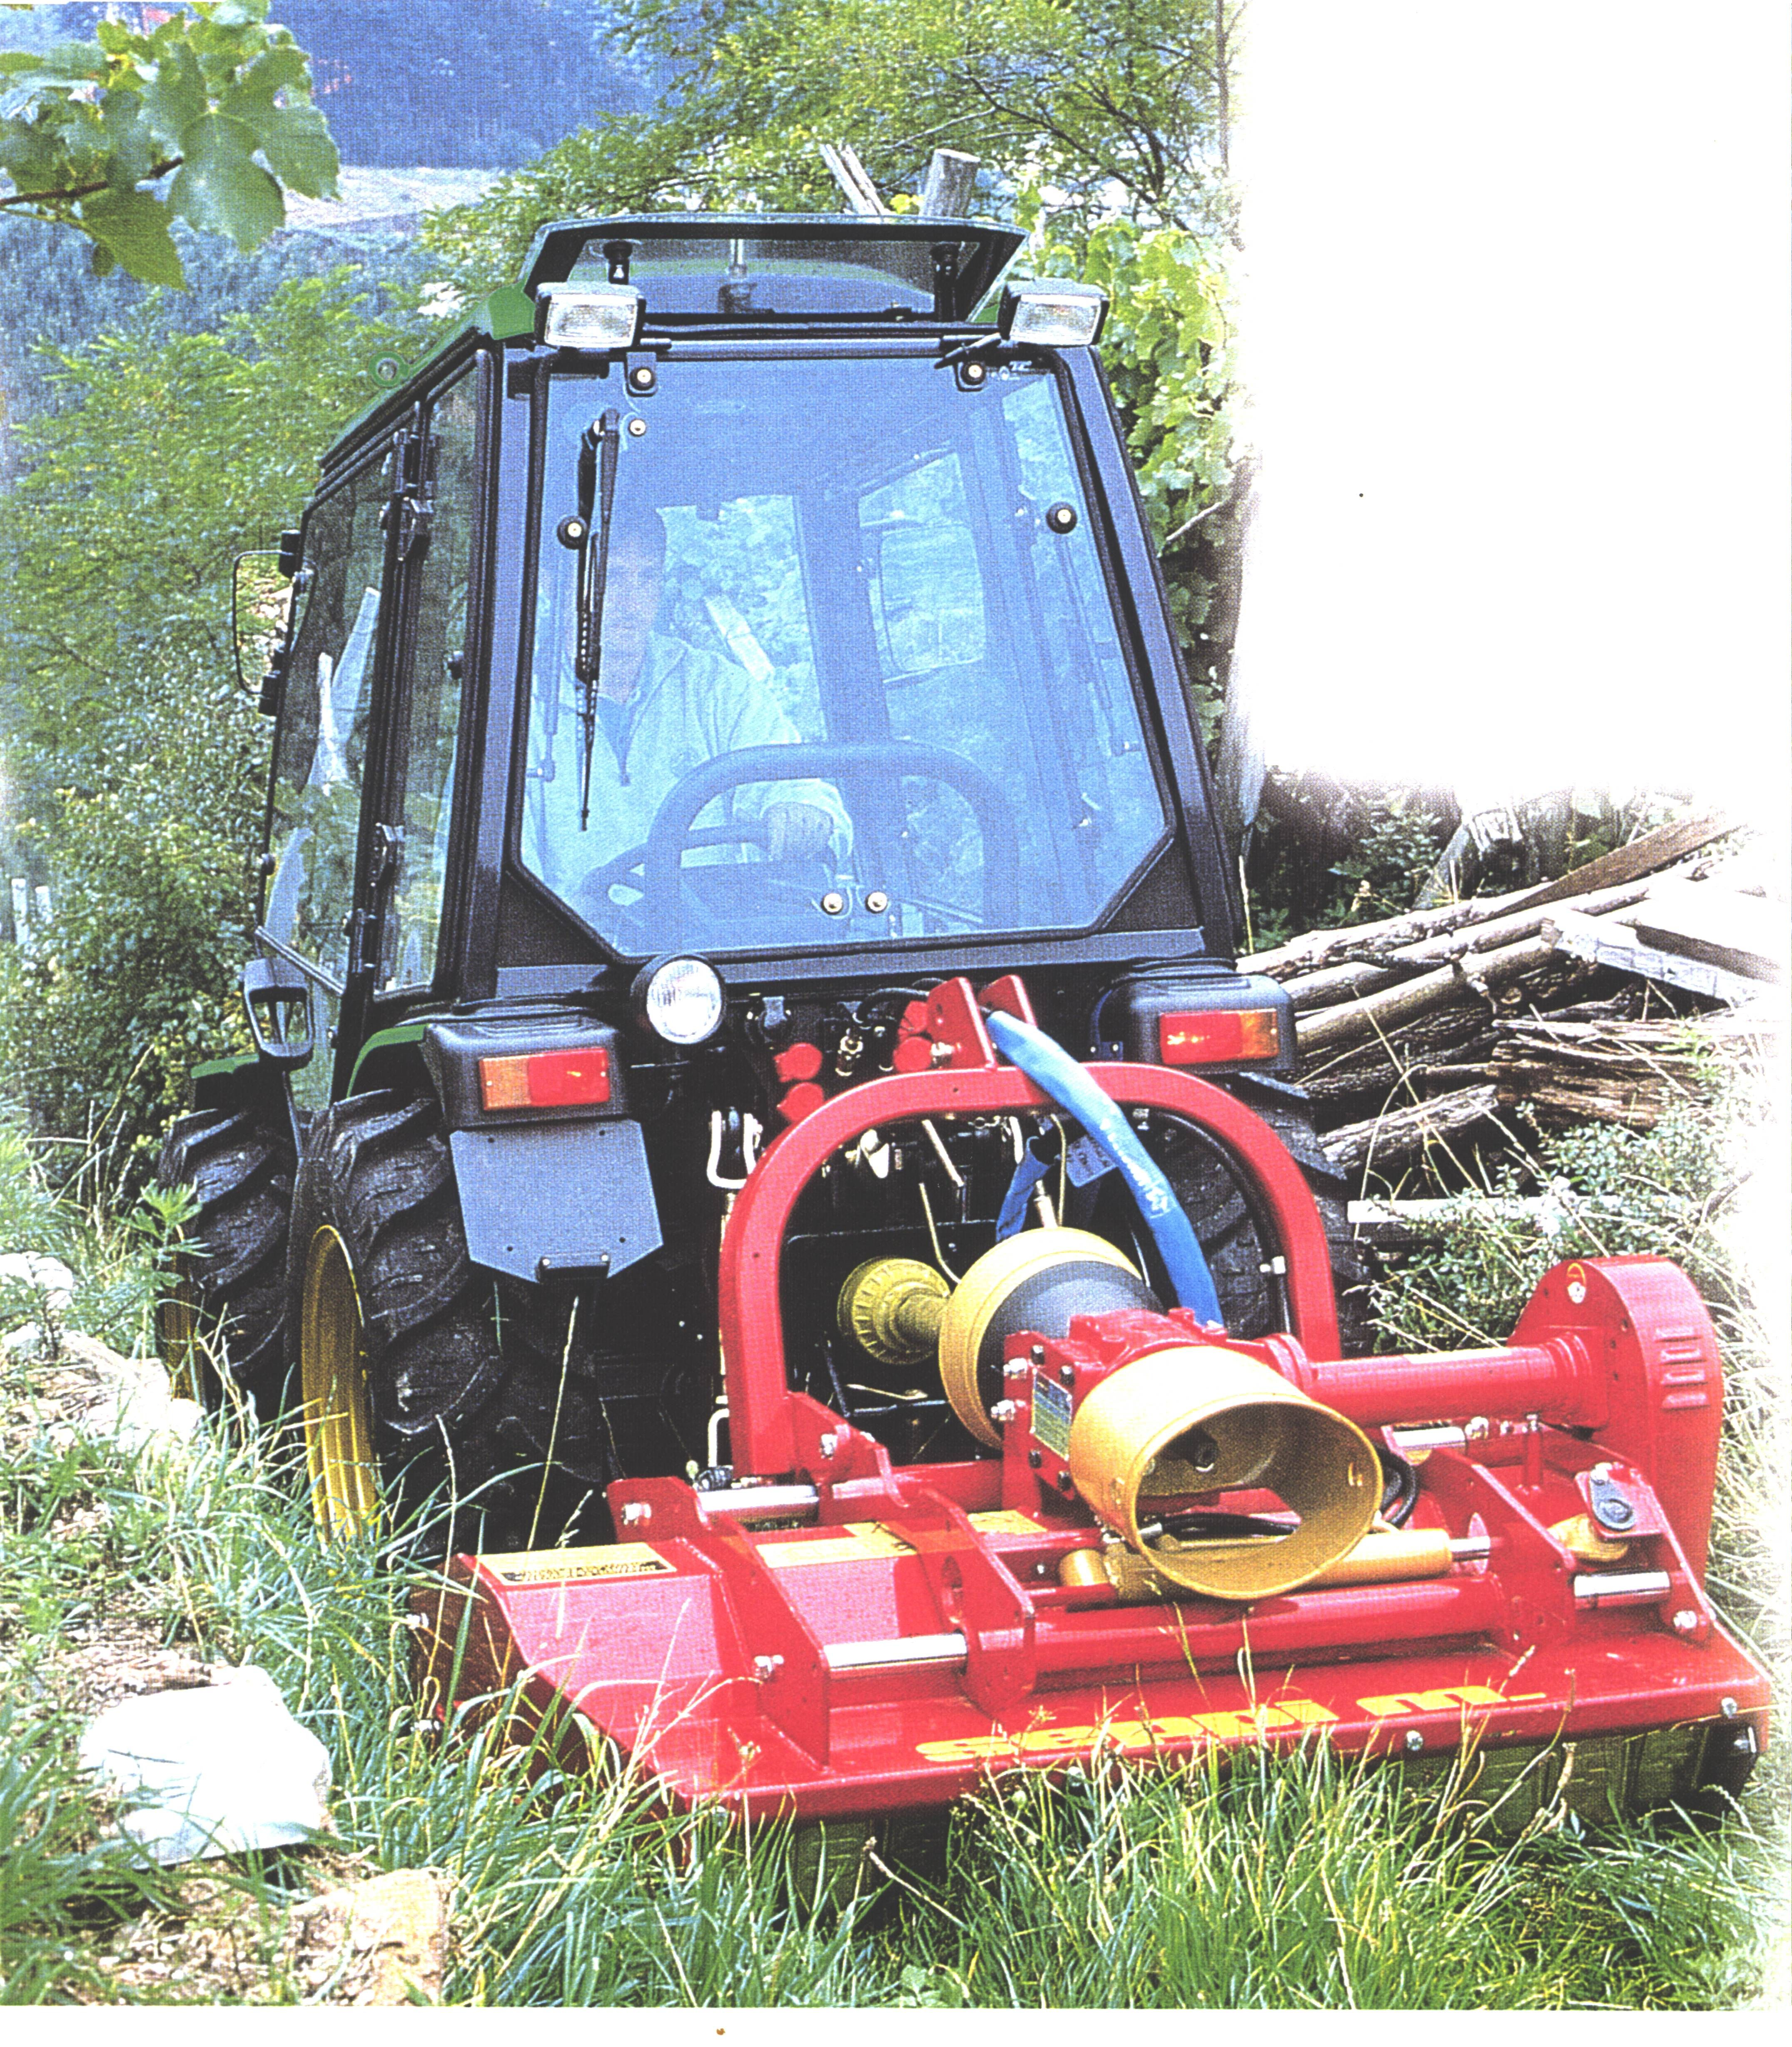 This flail mower is setup for front or rear mount and has